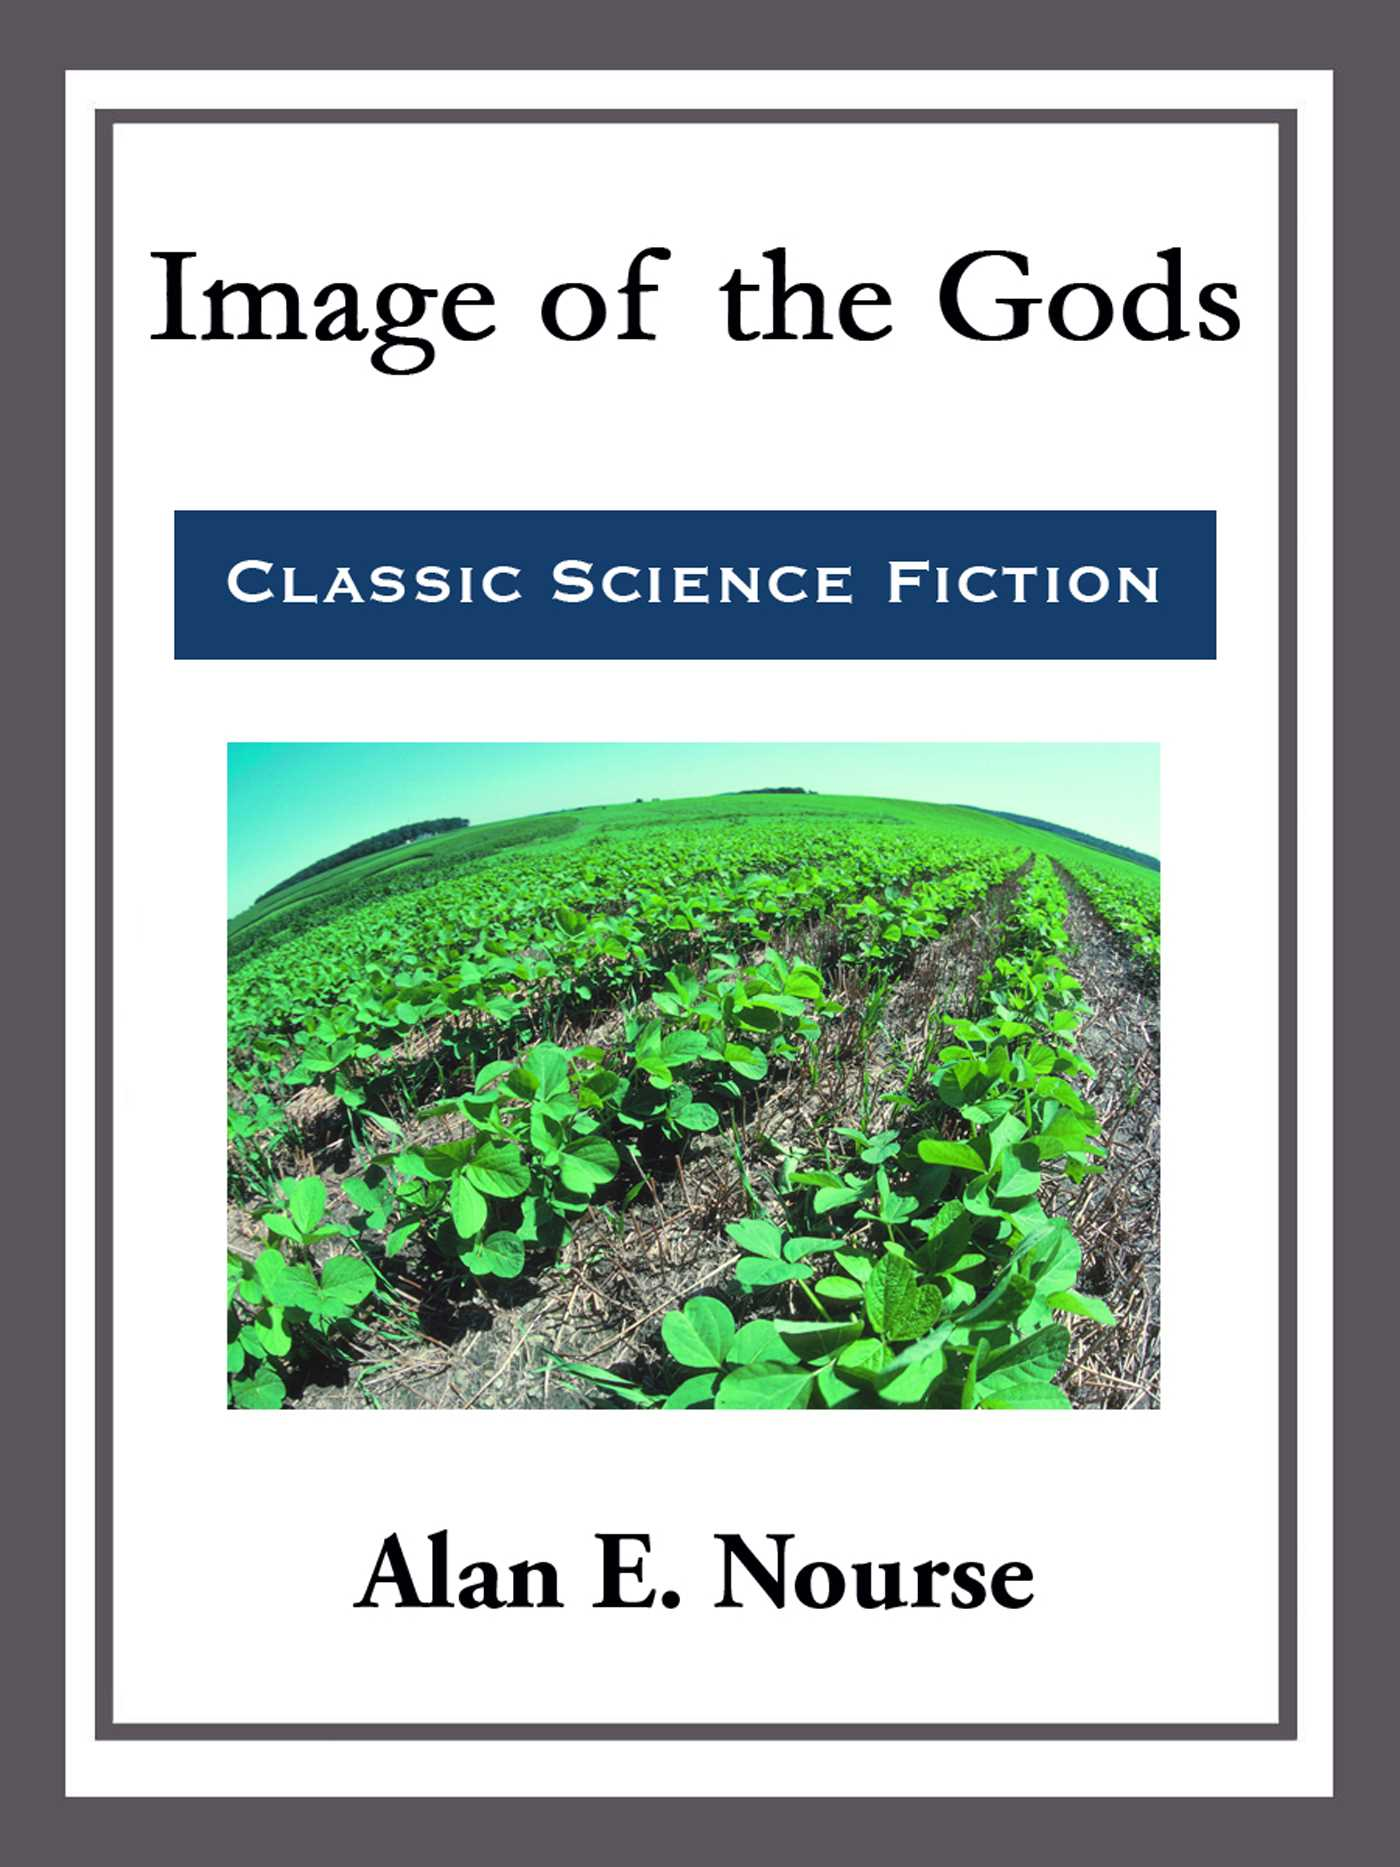 Image of the gods 9781681465197 hr